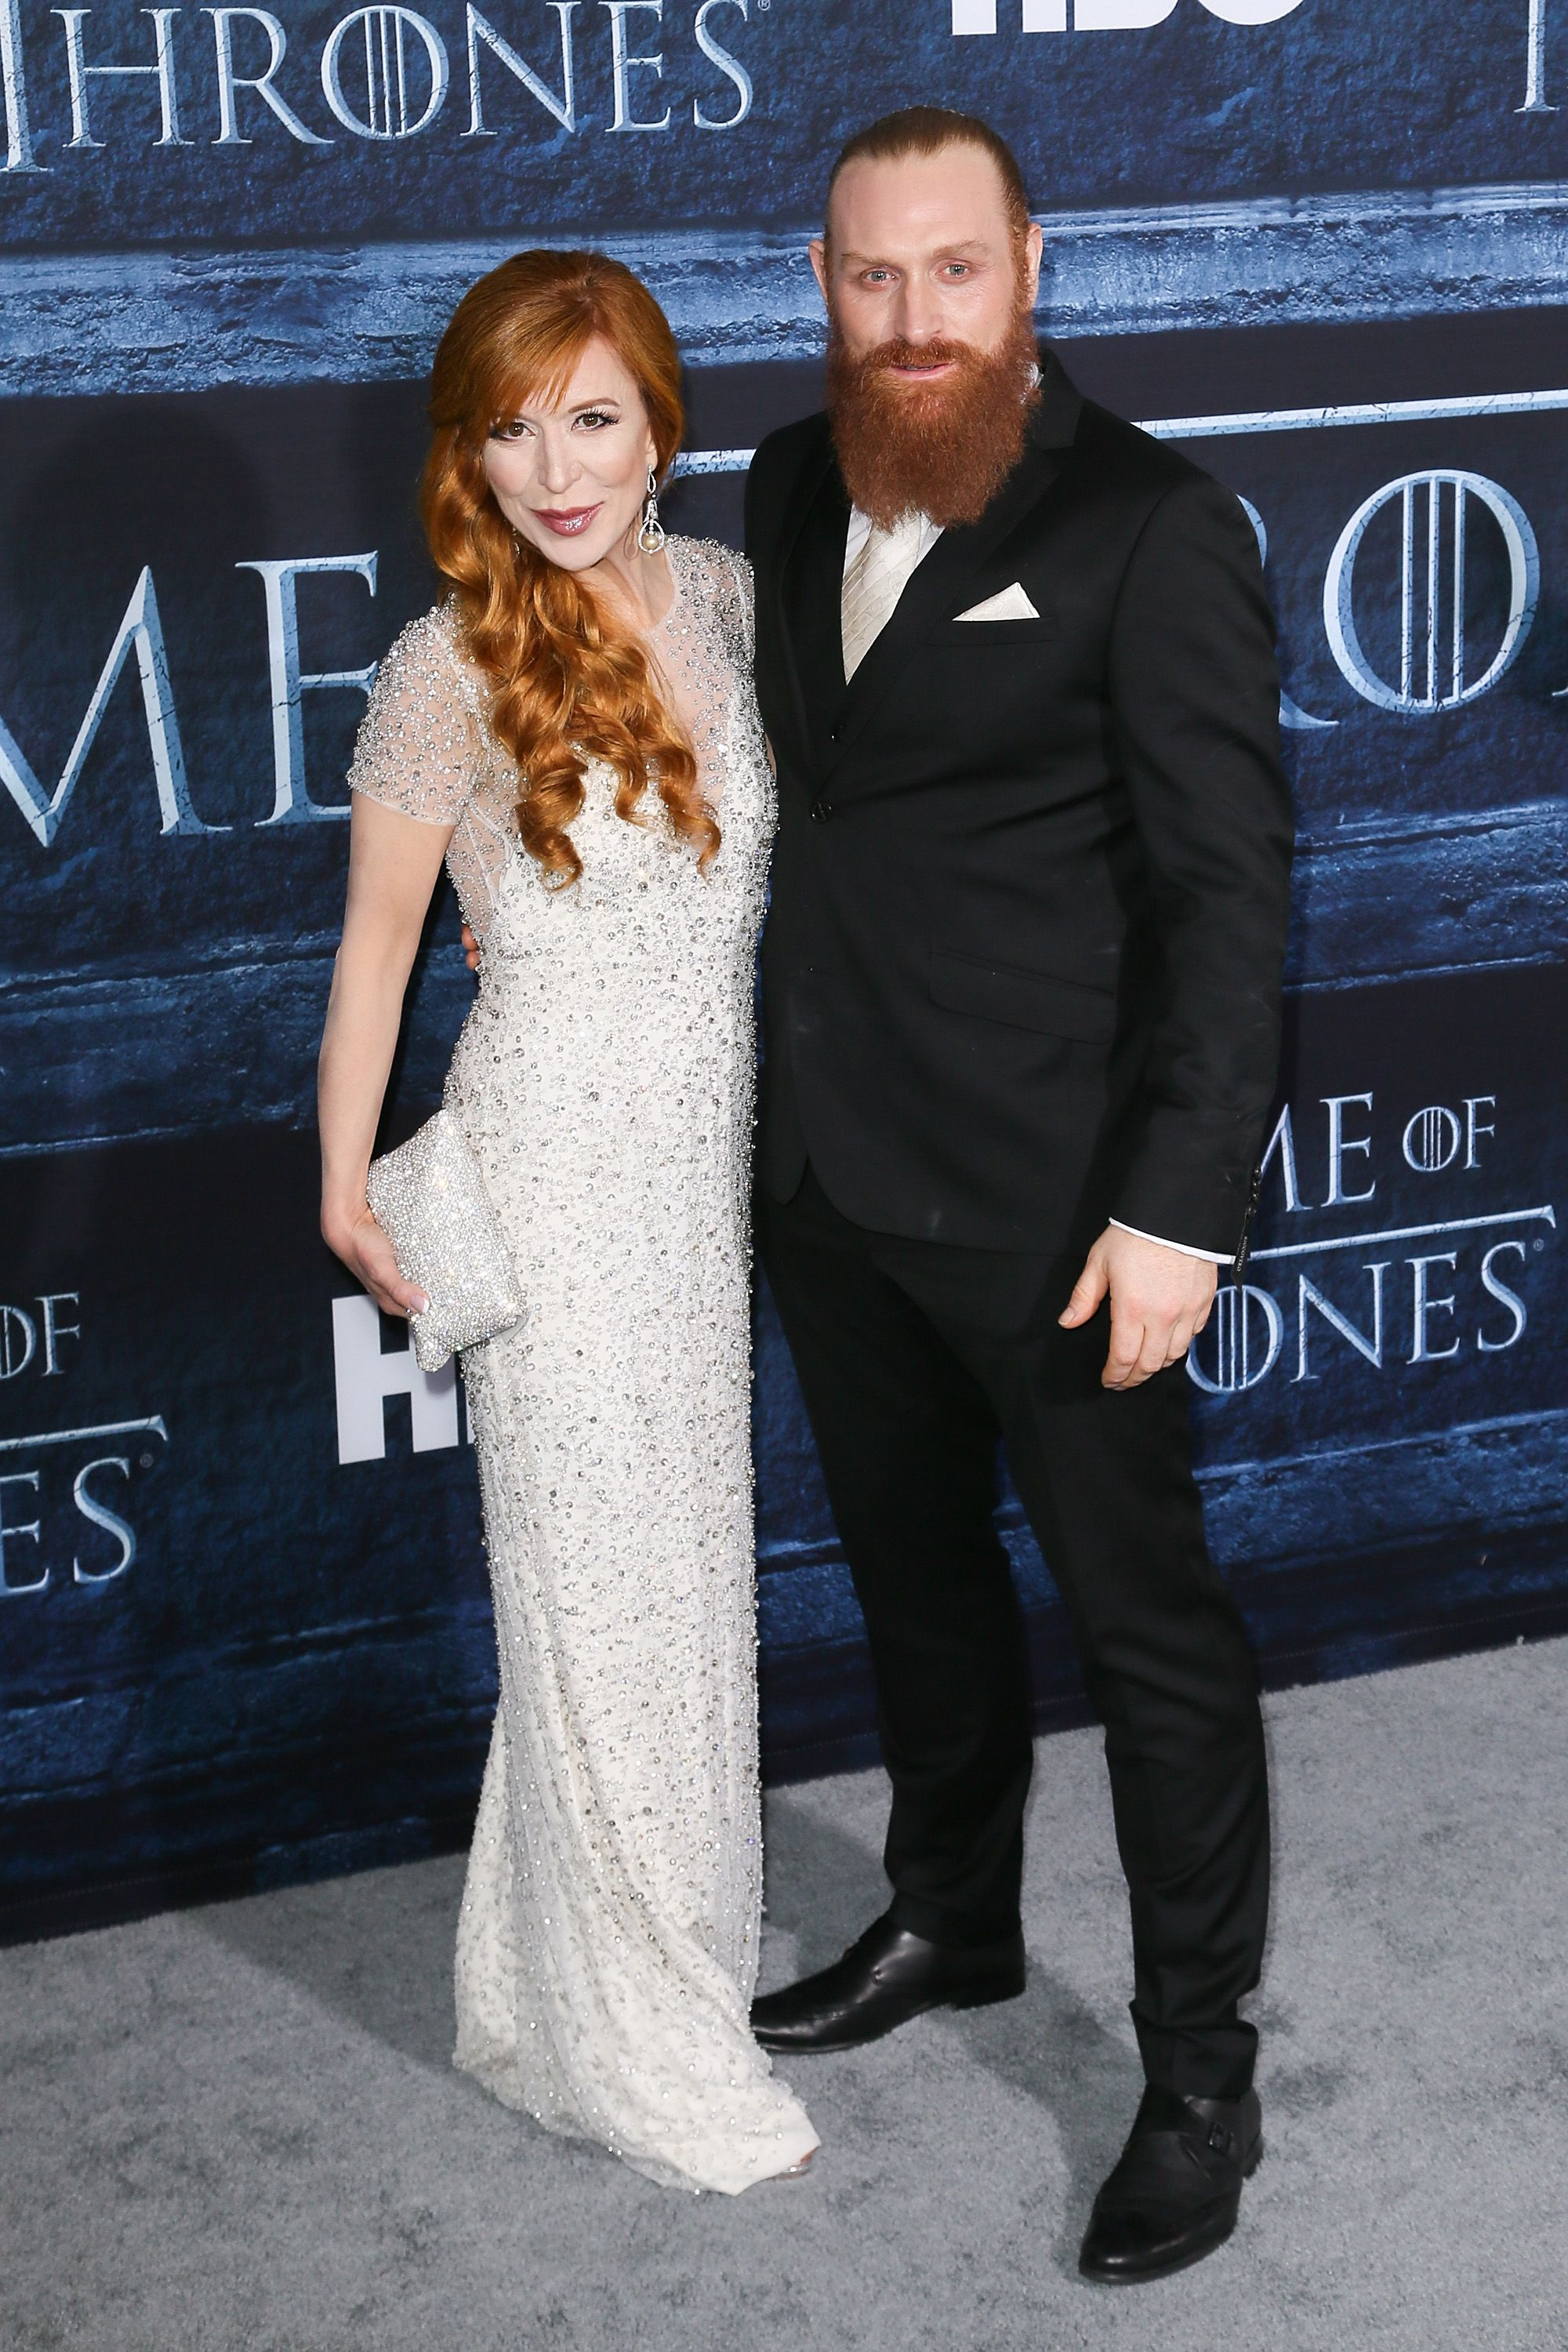 Kristofer Hivju (Tormund) and Gry Molvær Hivju The actor and journalist have been happily married since 2015.